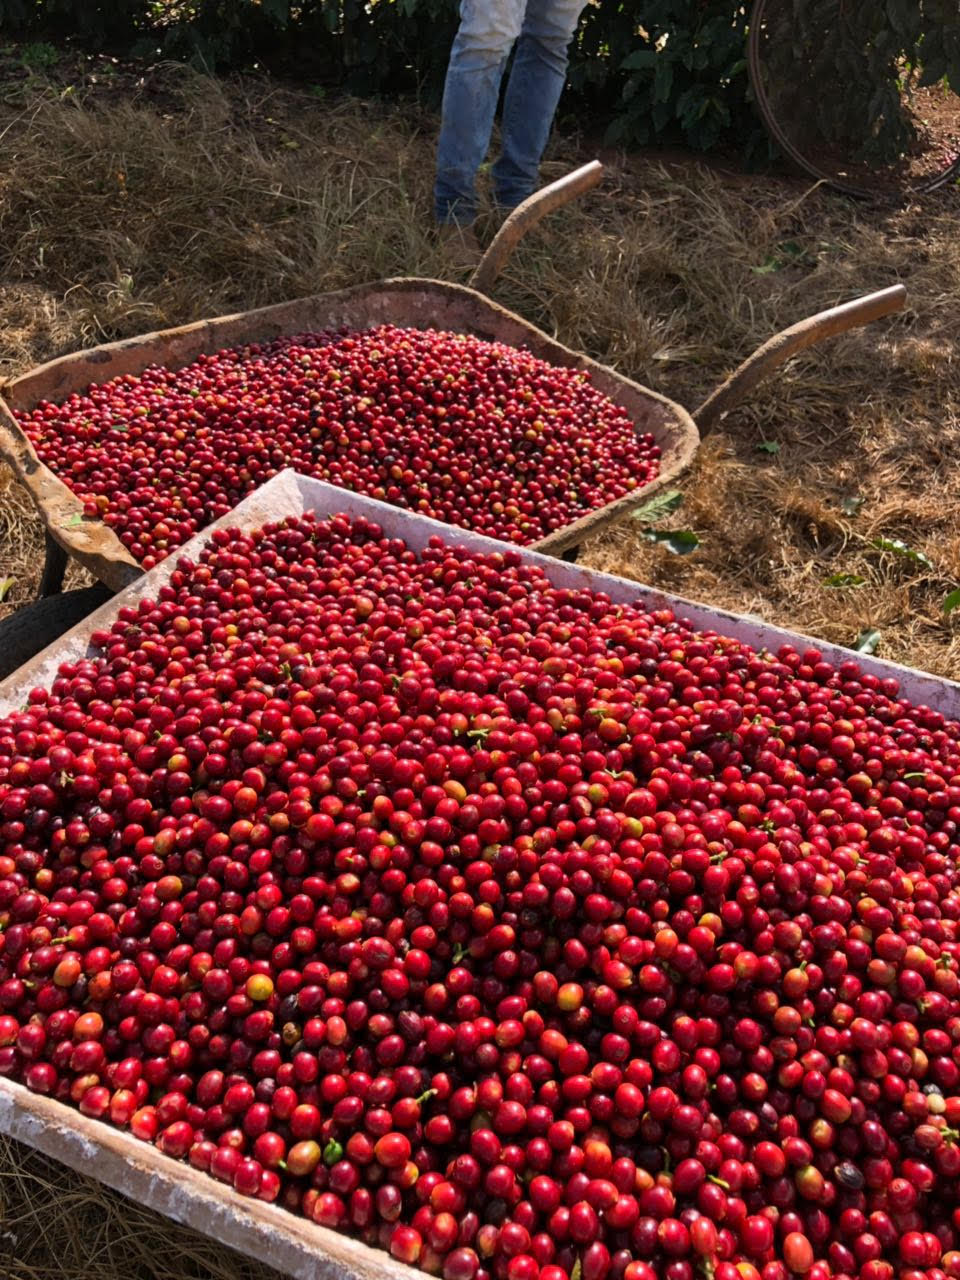 Coffee cherries fresh from the field